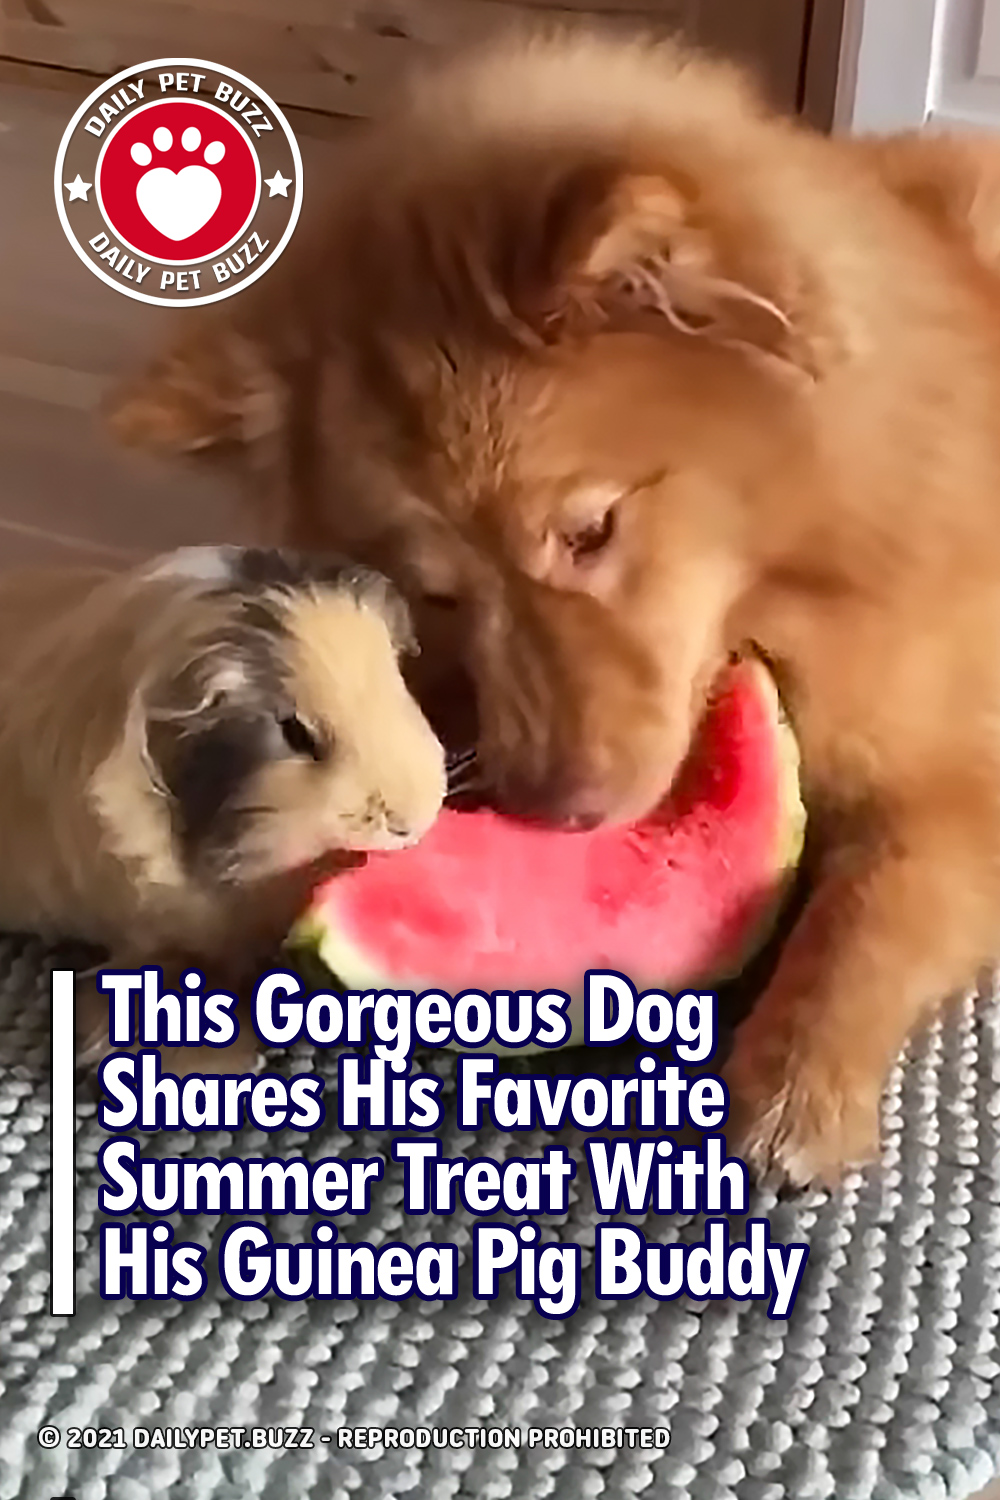 This Gorgeous Dog Shares His Favorite Summer Treat With His Guinea Pig Buddy